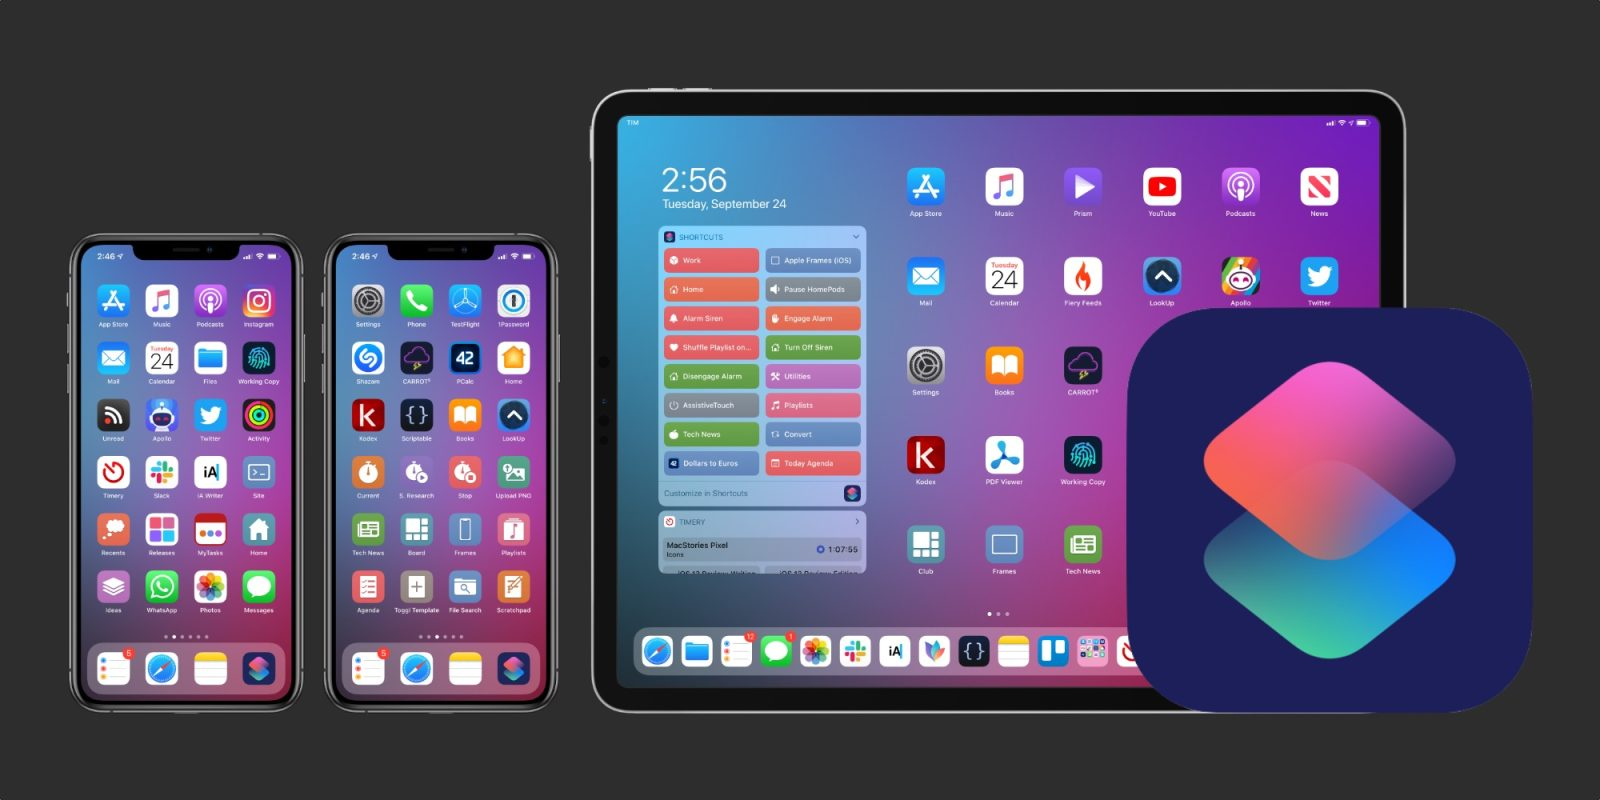 Apple's Shortcuts app is now built-in on iPhones and iPads, these resources take it to the next level